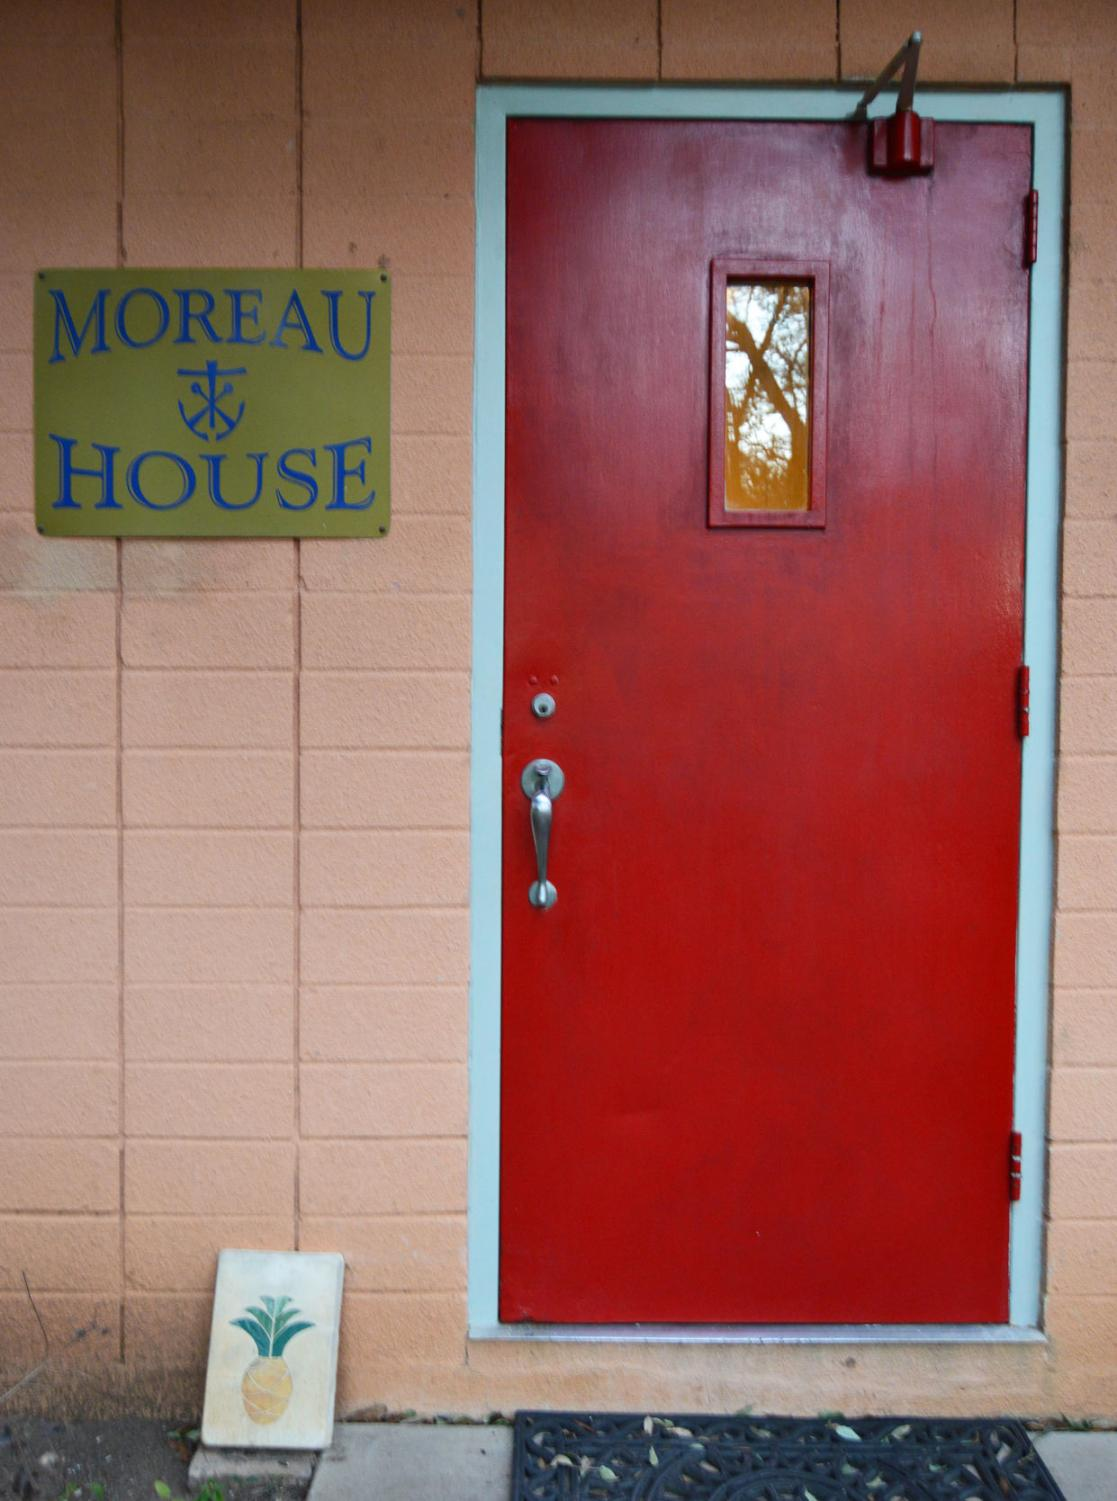 Moreau House will not be closing there doors after 16 years of accepting students due to potential Title IX concerns.